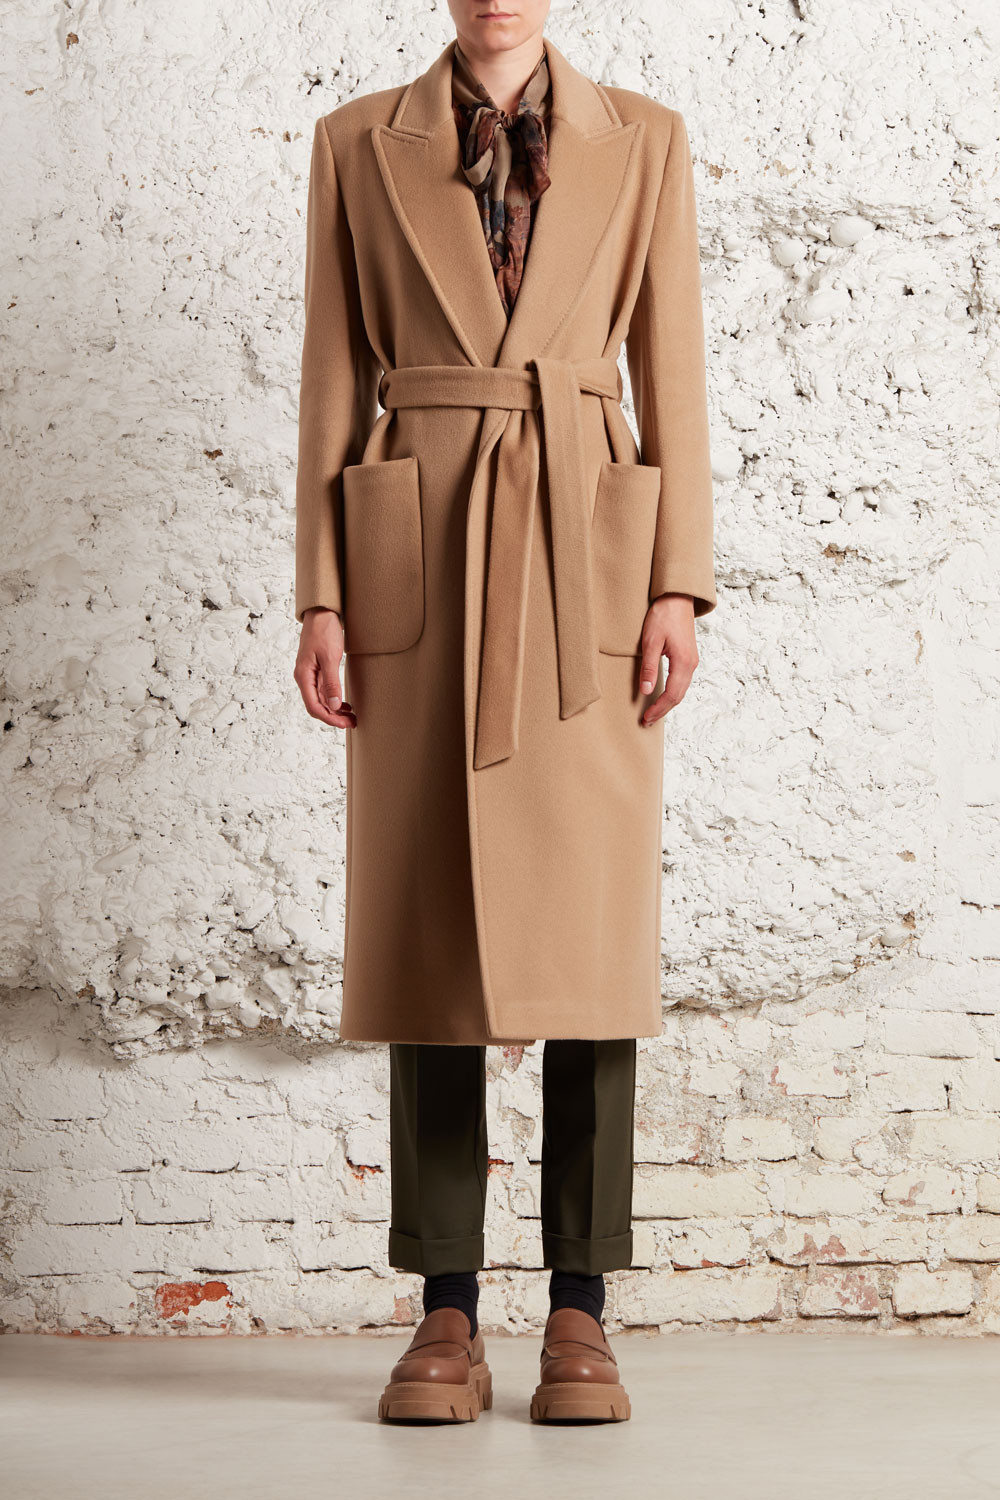 LONG COAT IN CACHEMIRE - WIRED430278B